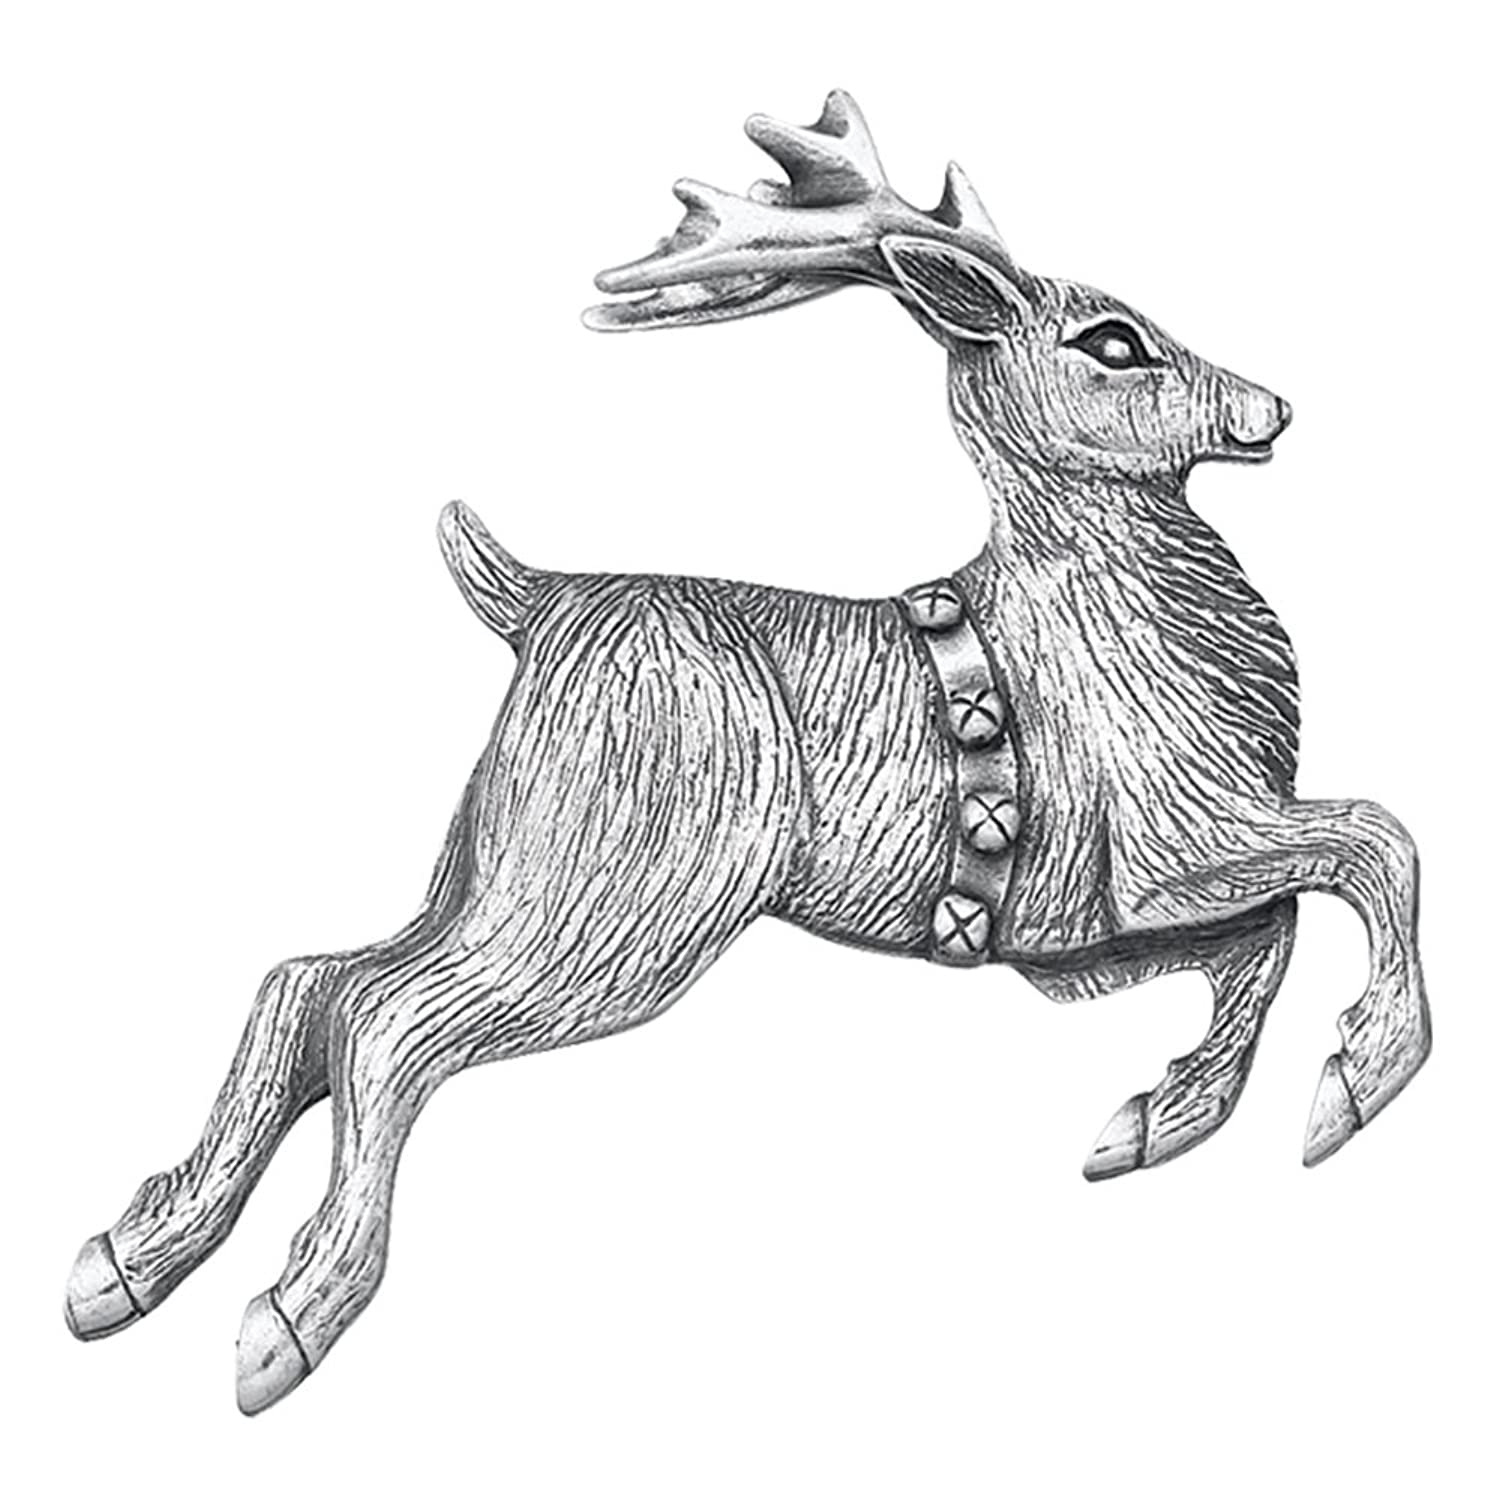 Danforth - Reindeer Pewter Brooch Pin